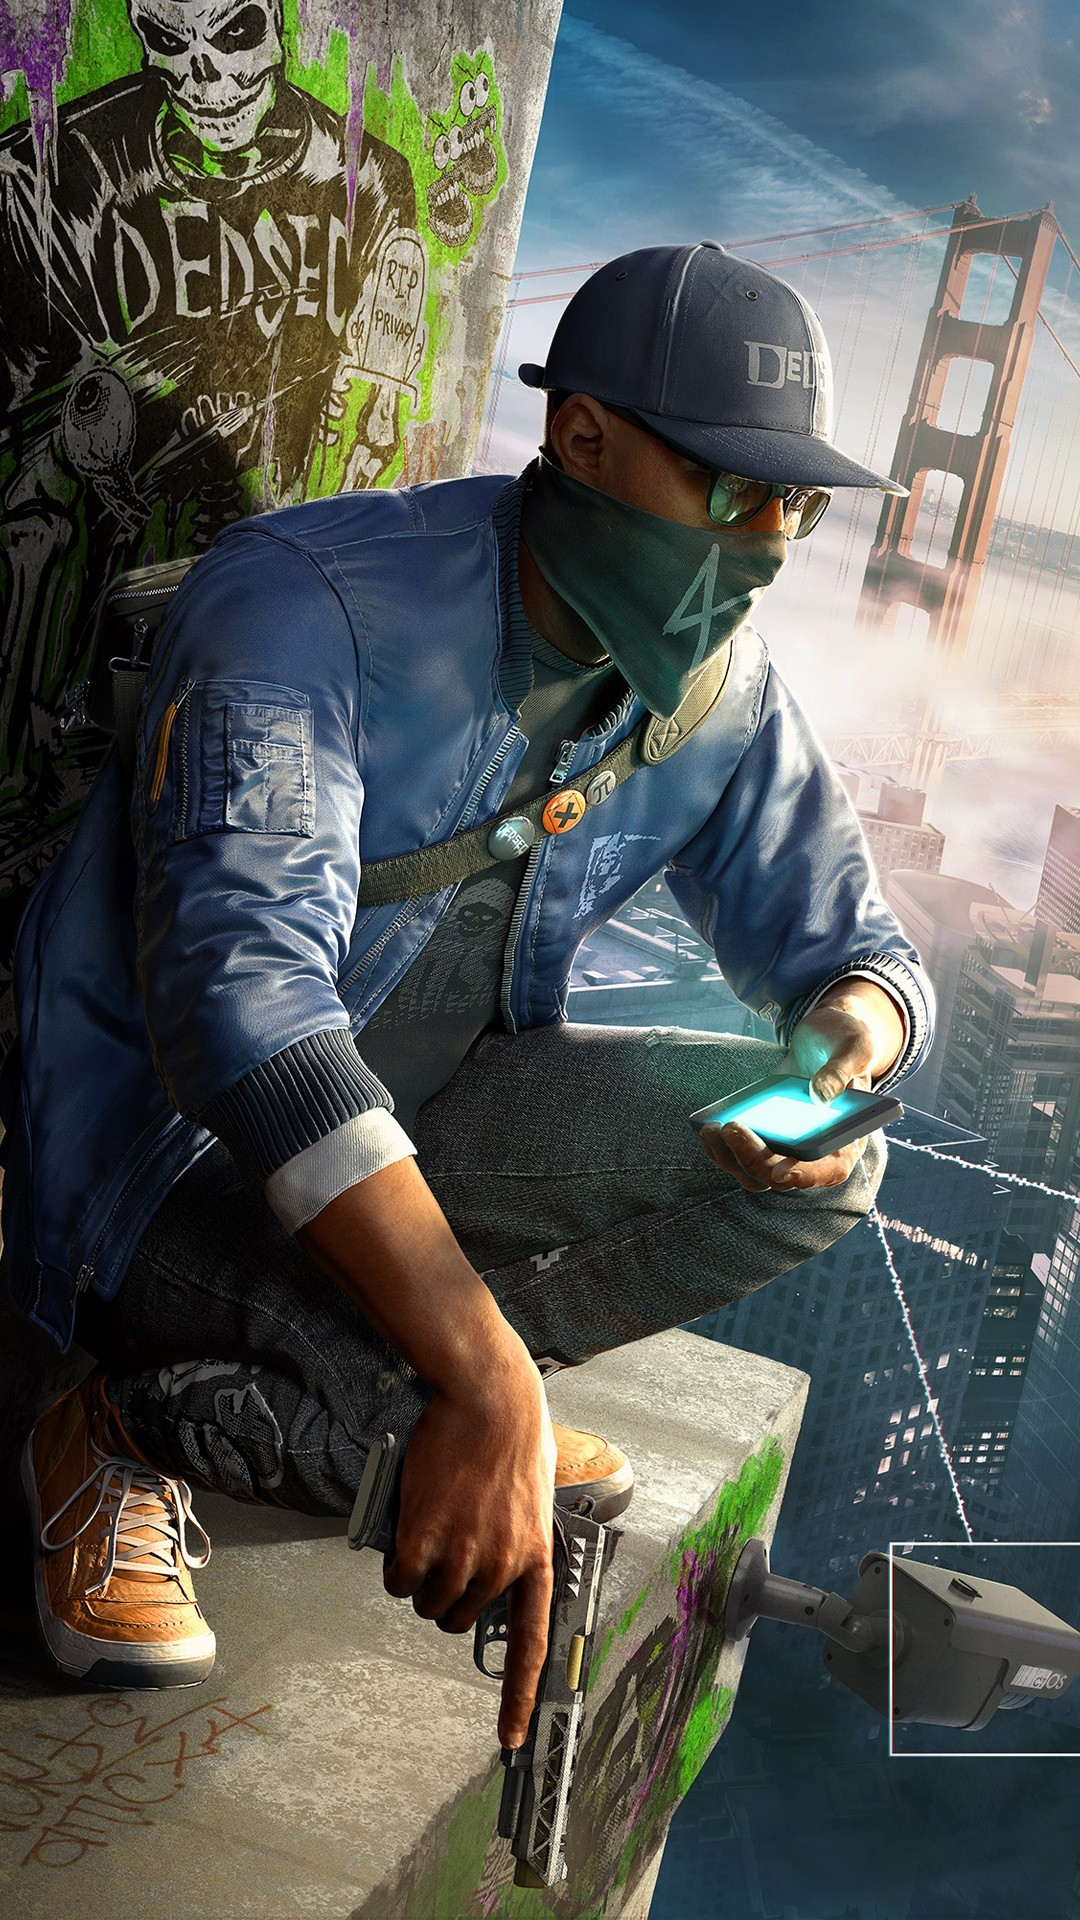 Related Post Watch Dogs 2 Android 1175255 Hd